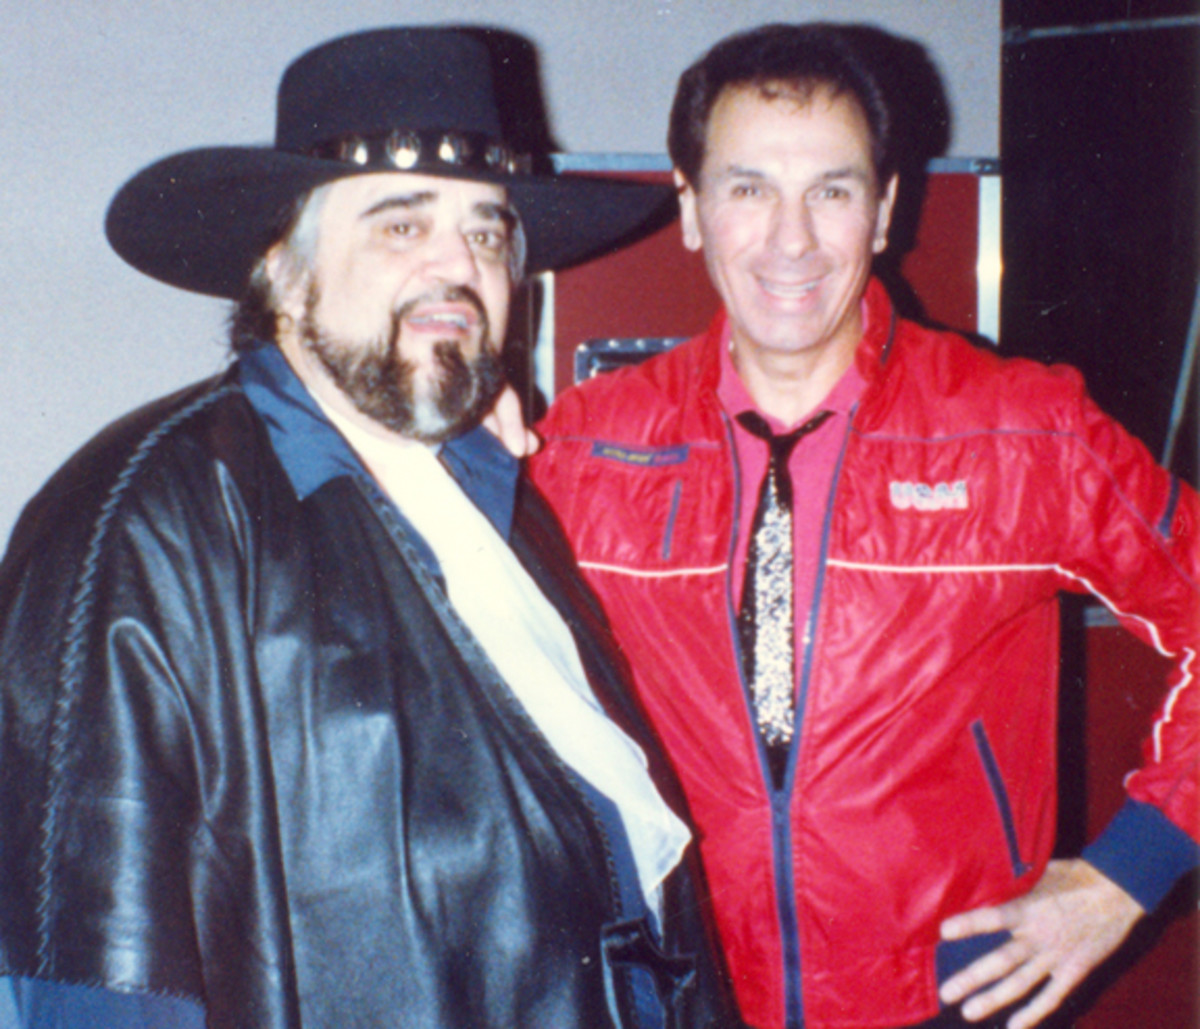 Freddy Cannon and Wolfman Jack